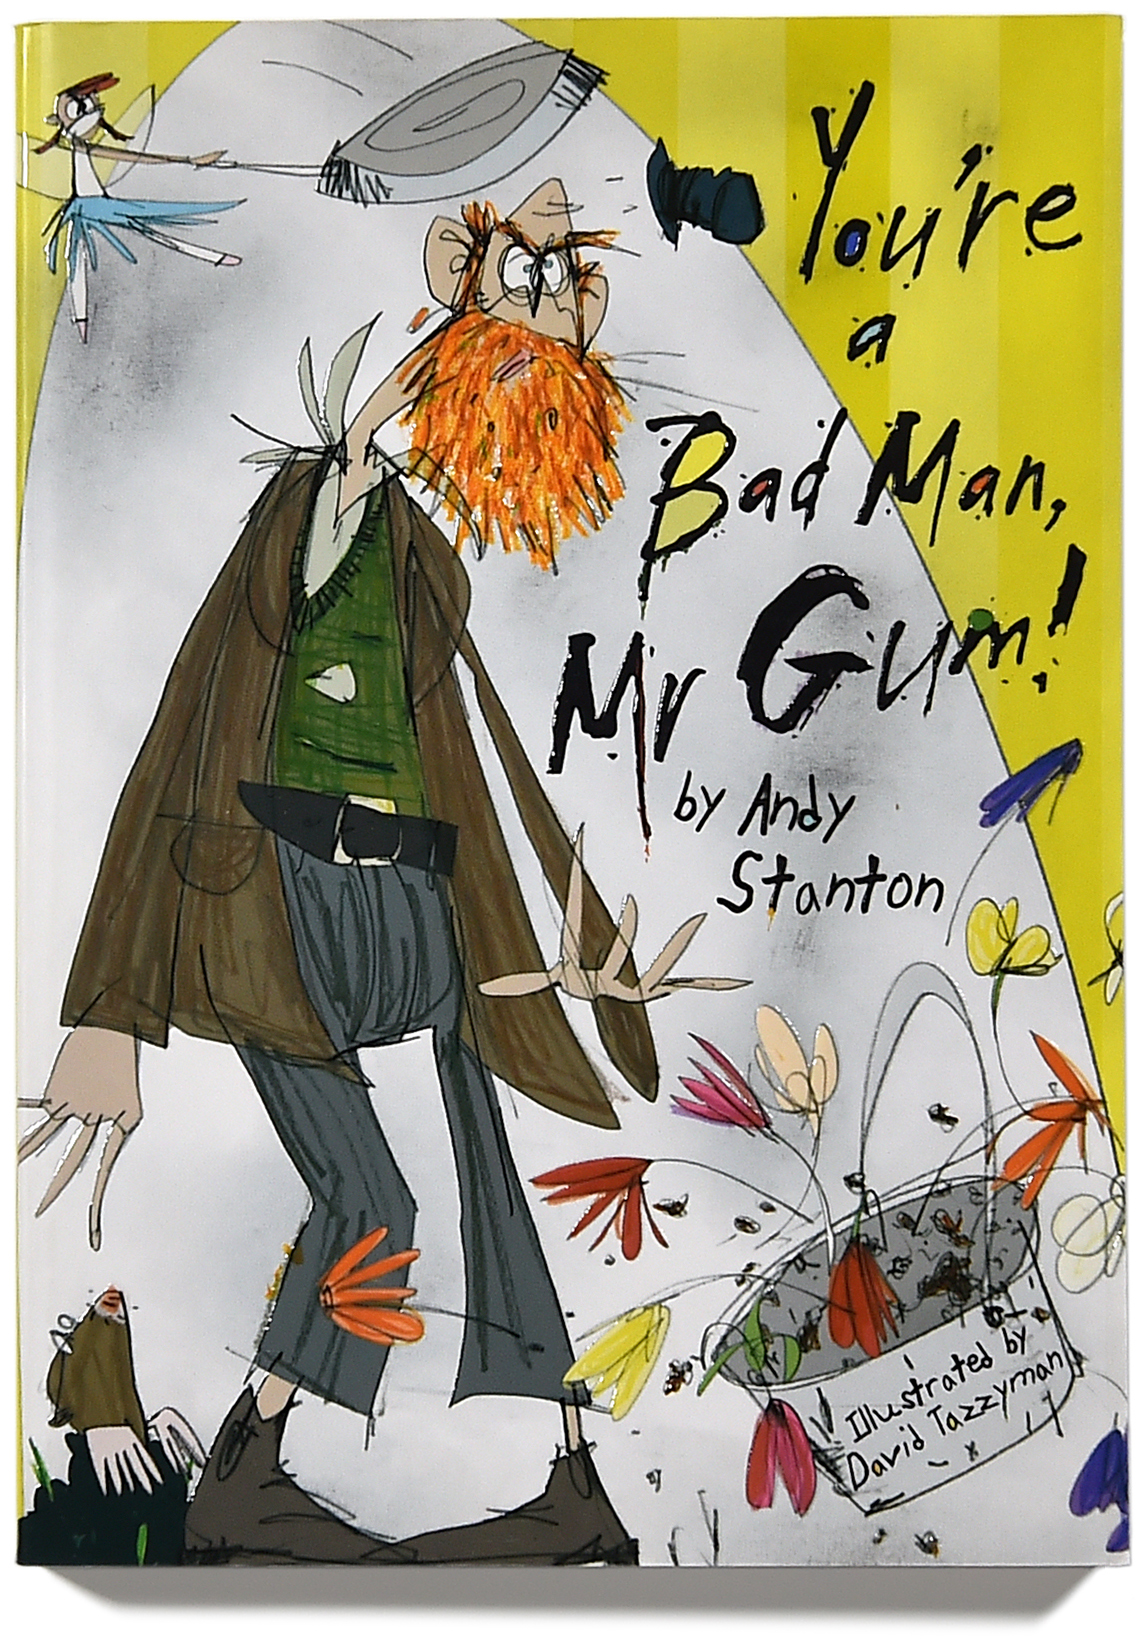 You're a Bad Man Mr gum! cover.FIN.jpg